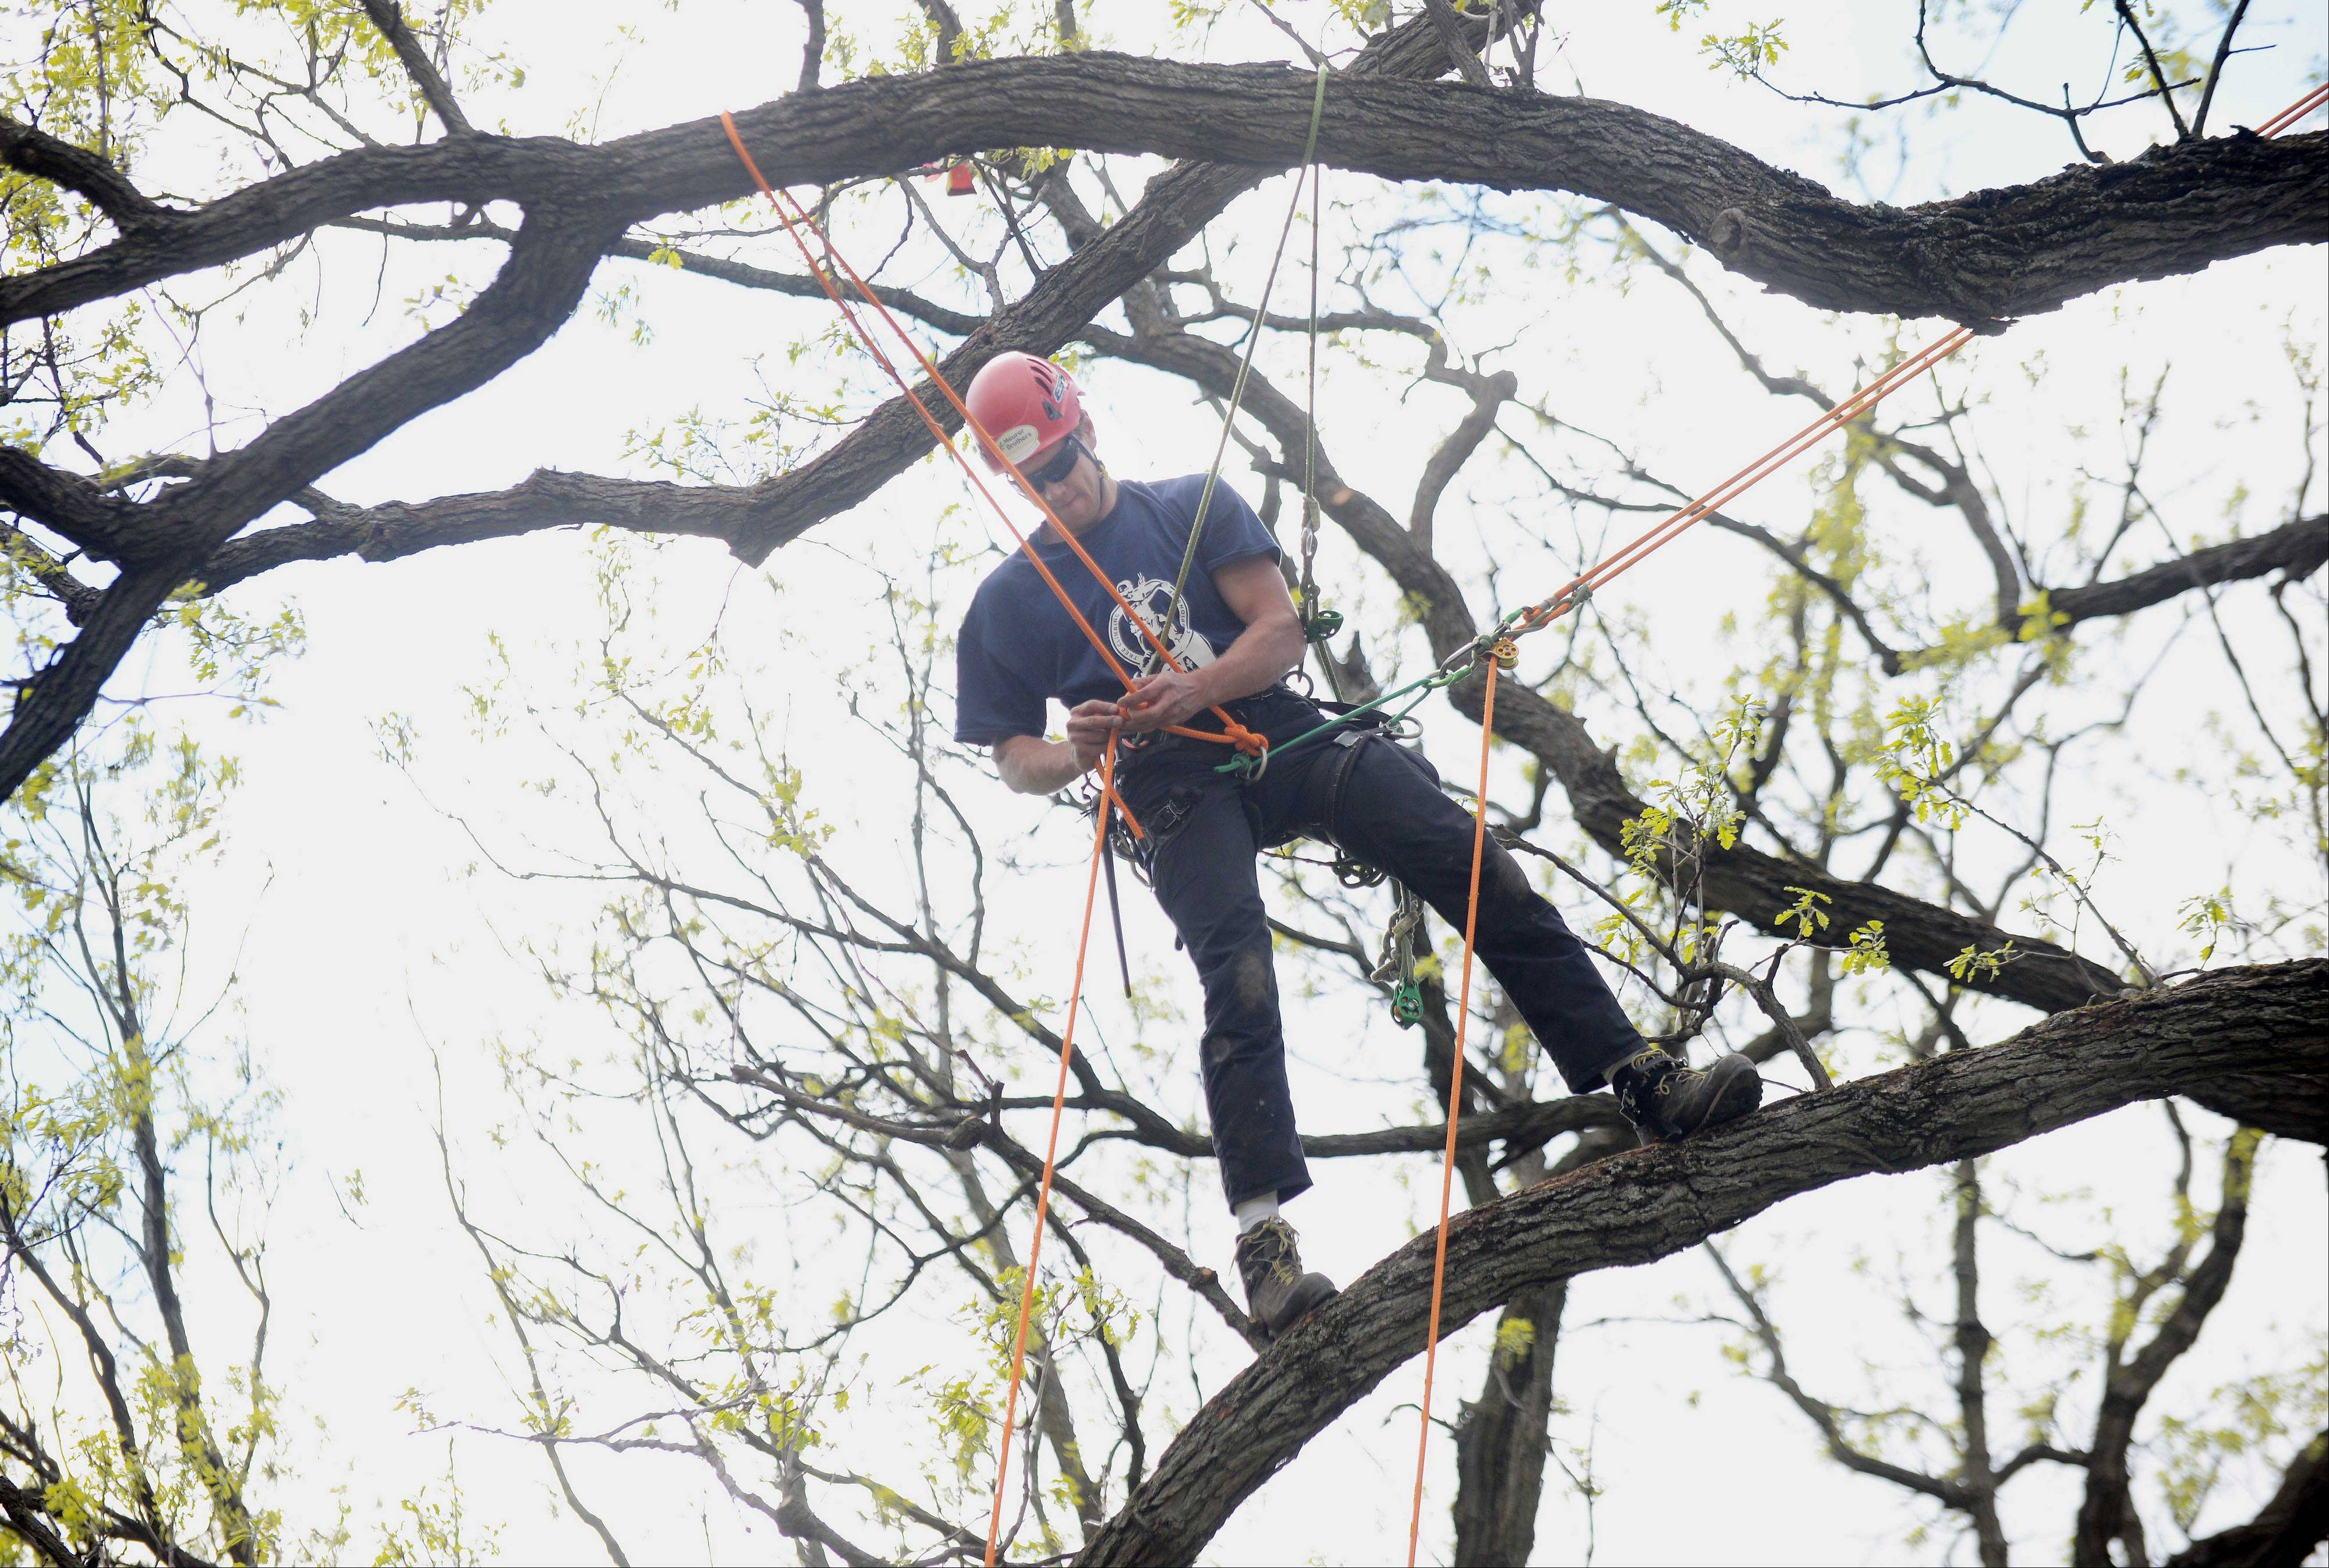 David Meurer of Belleville was one of 30 professional tree climbers who competed for the title of best climber in the Illinois Arborist Association annual tree climbing competition Saturday at Cantigny Gardens in Wheaton.